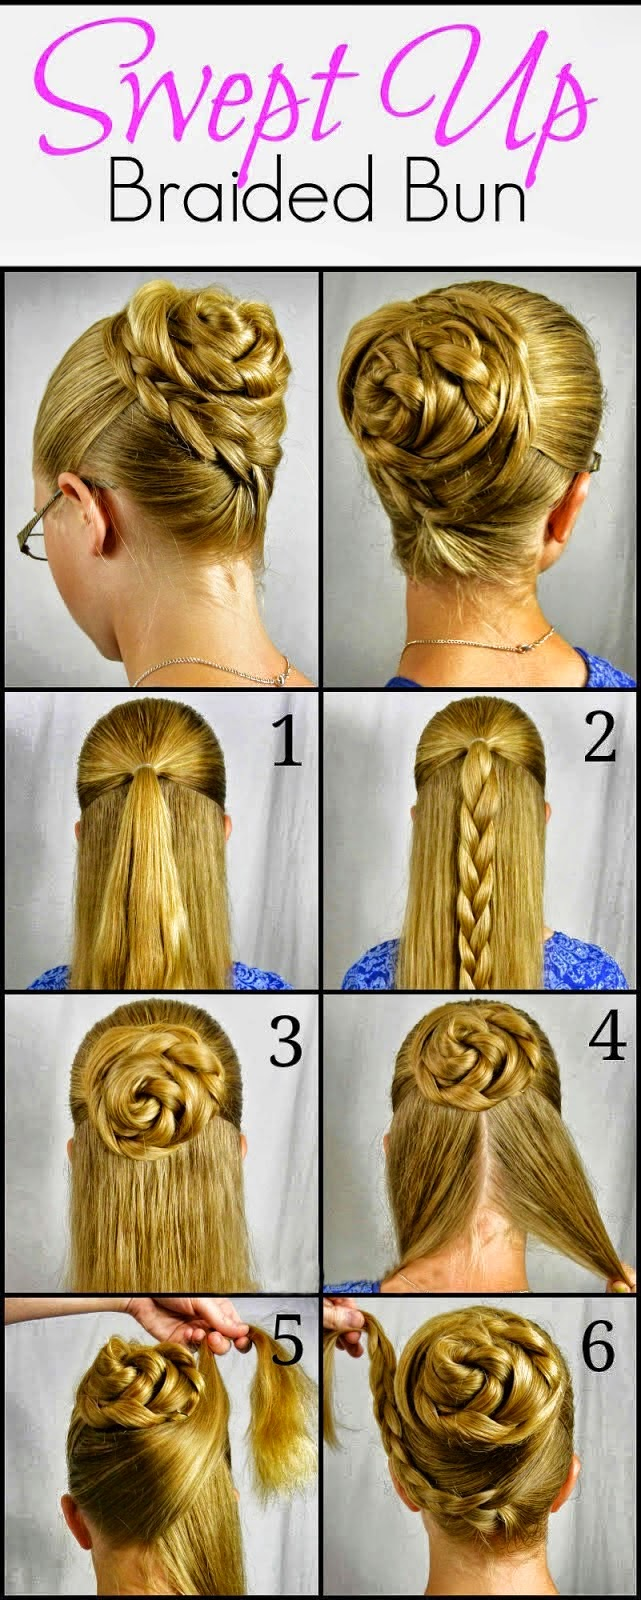 Swept Up Rose Braid Bun Hairstyle Step By Step   Beauty ...